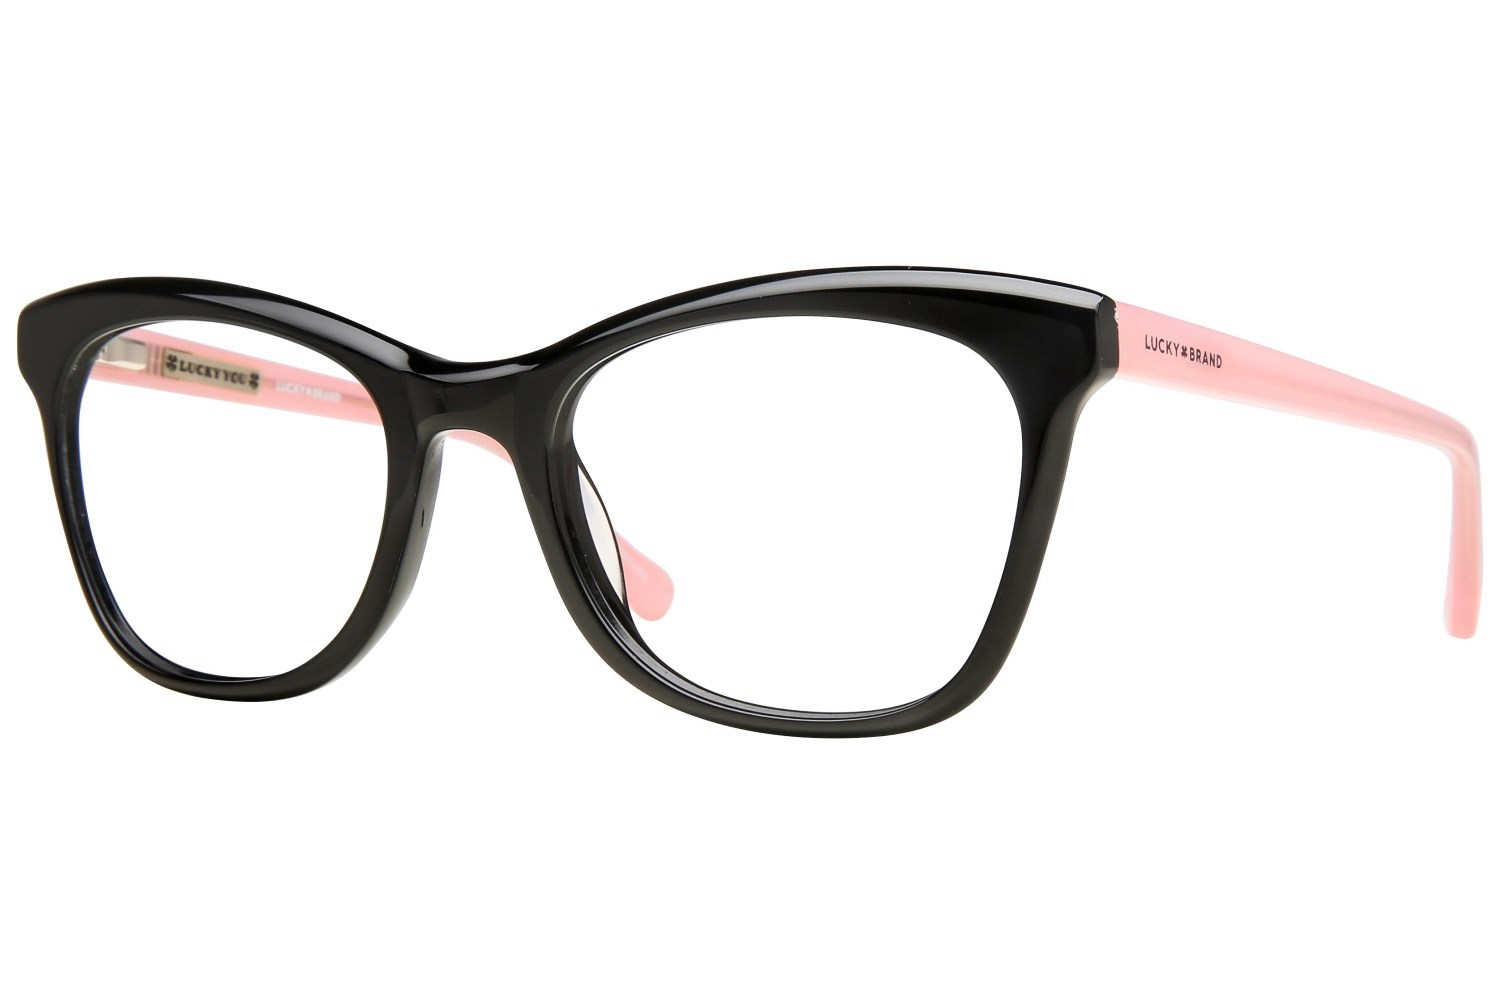 lucky-d203-prescription-eyeglasses